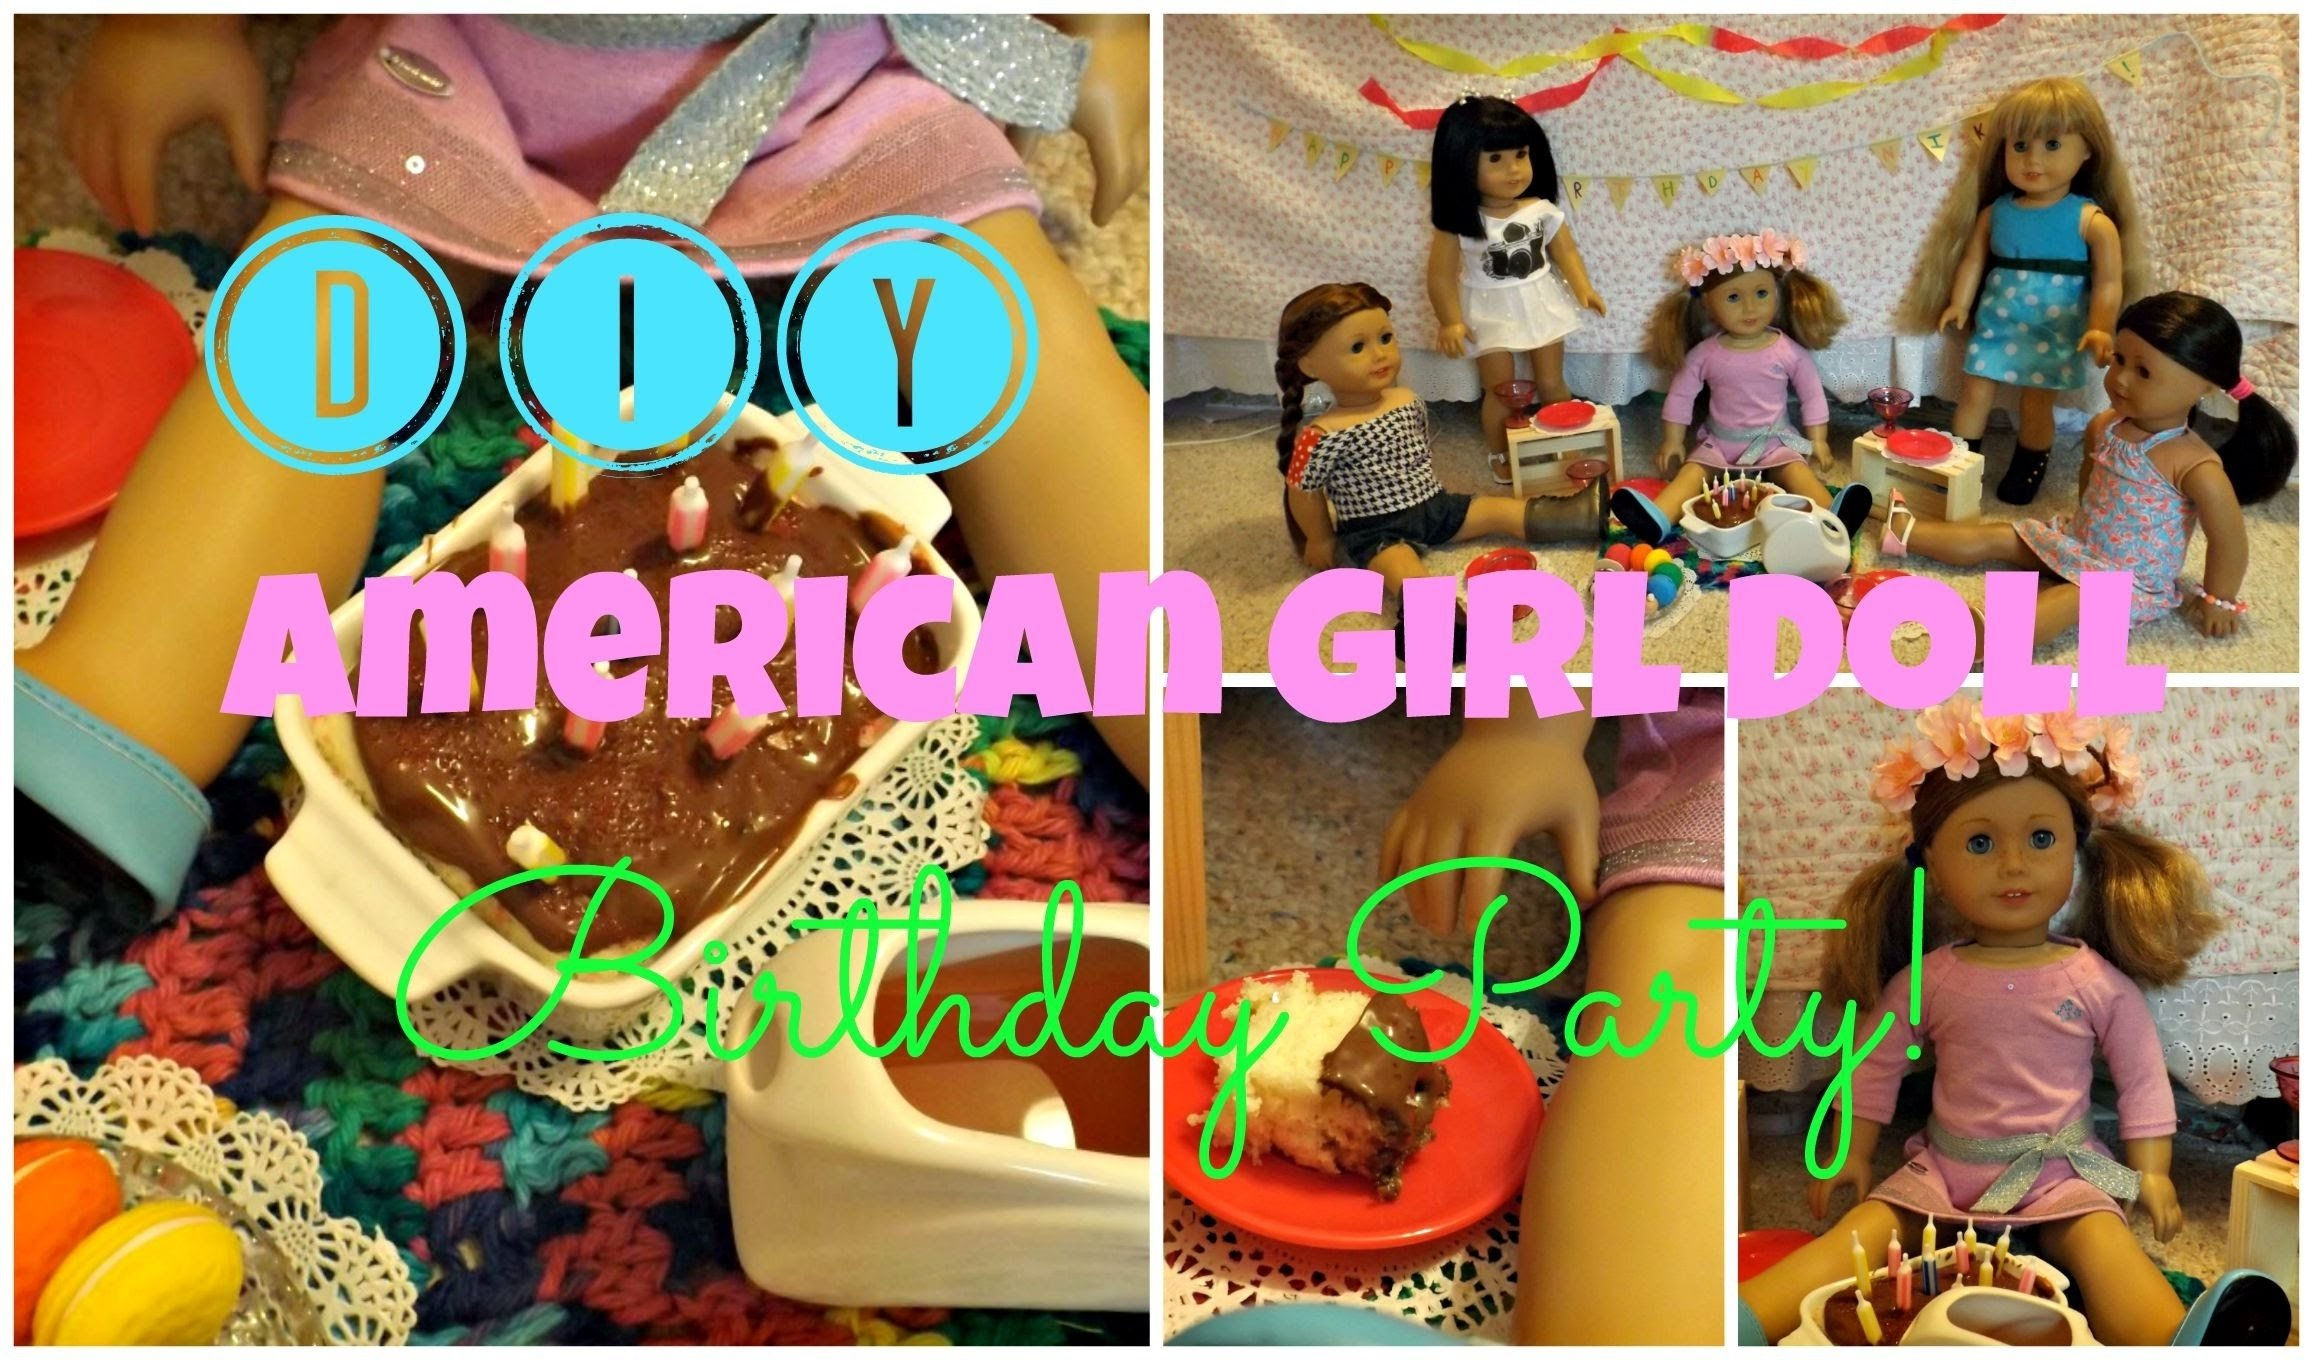 10 Great American Girl Doll Birthday Party Ideas diy american girl doll birthday party decorations cake more 2020